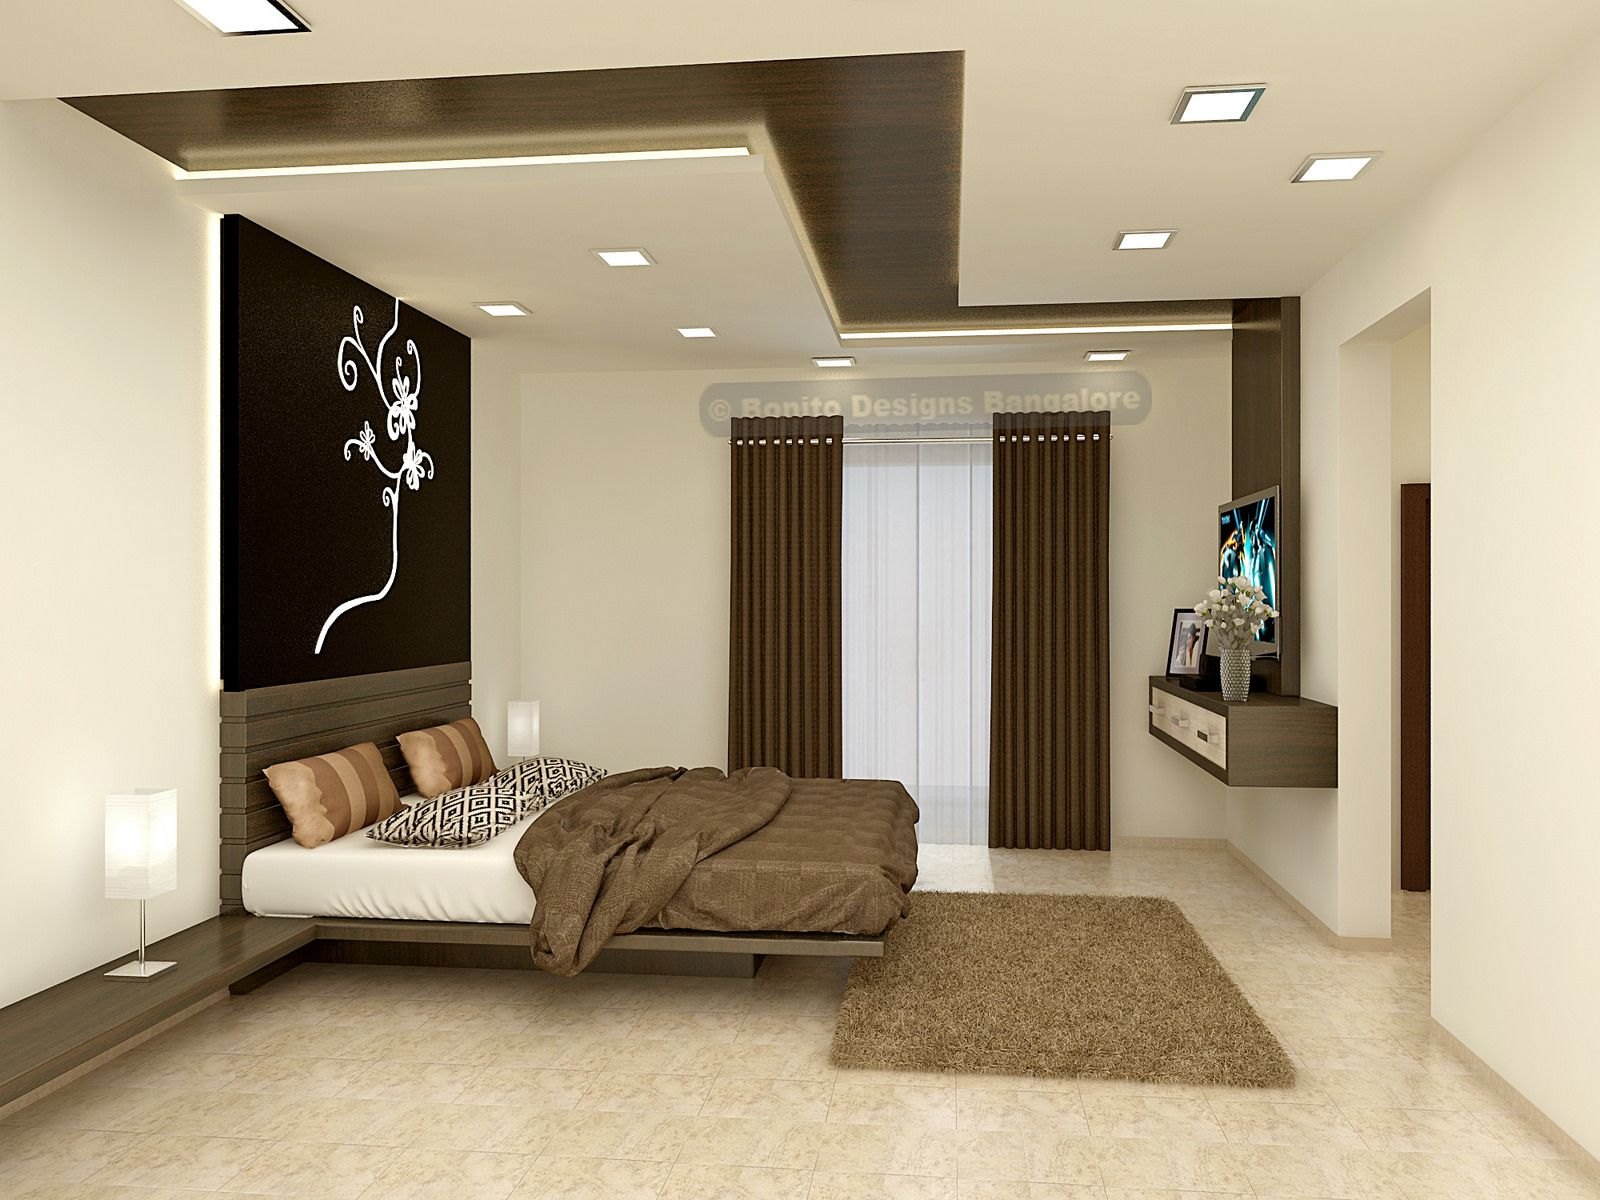 Sandepmbr 1 ceilings bedroom false ceiling design - Simple ceiling design for living room ...